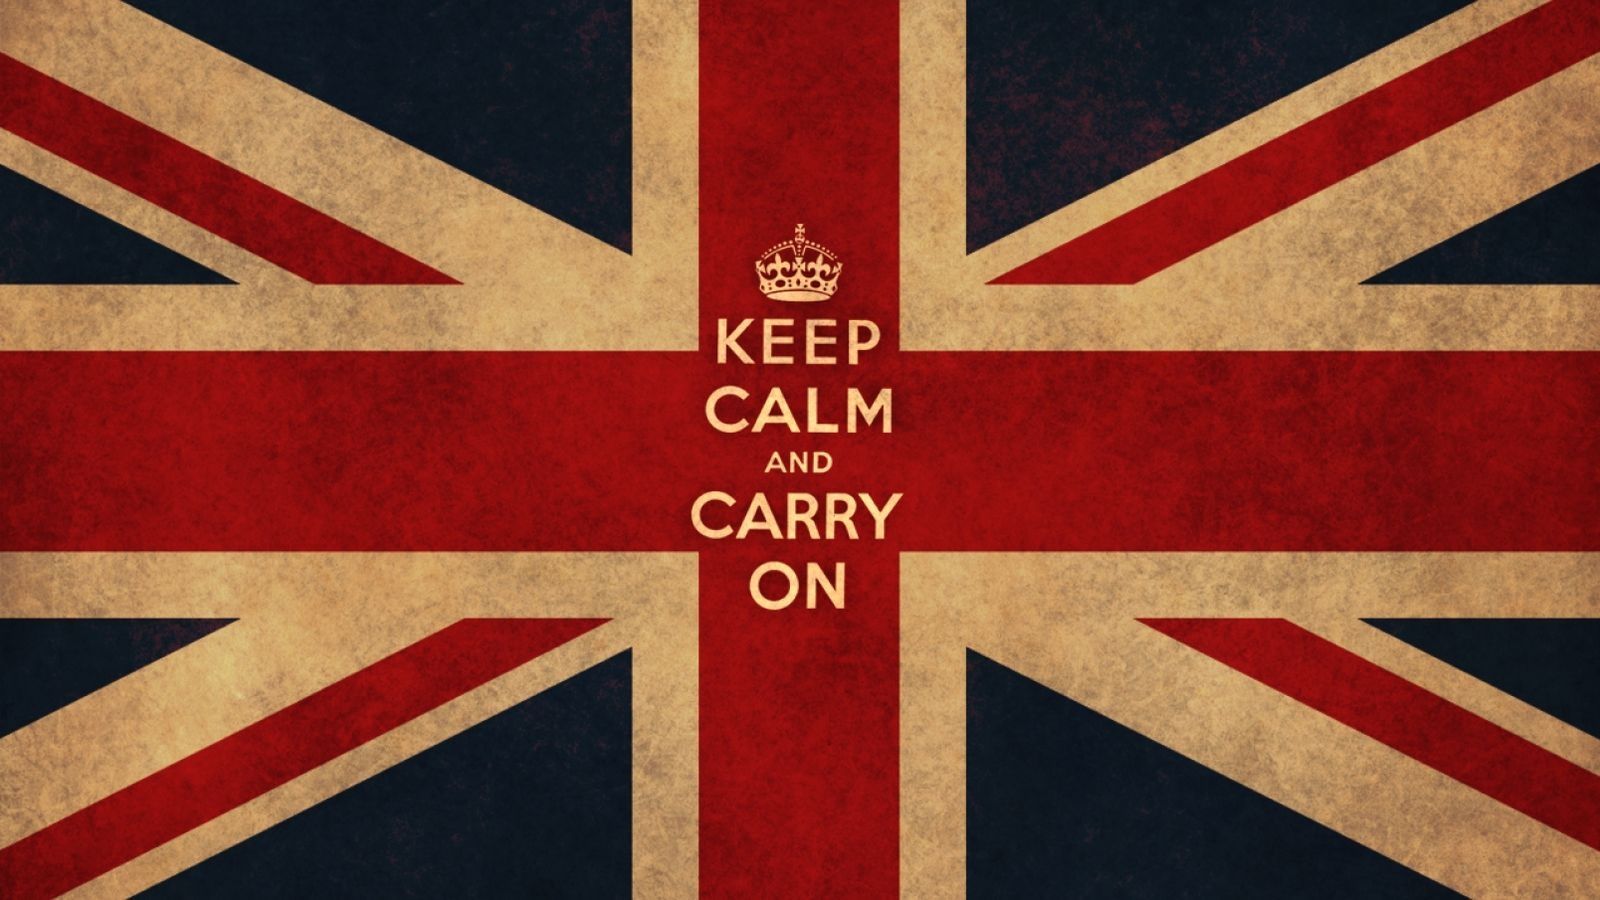 brexit keep calm union jack flag great britain sticker self